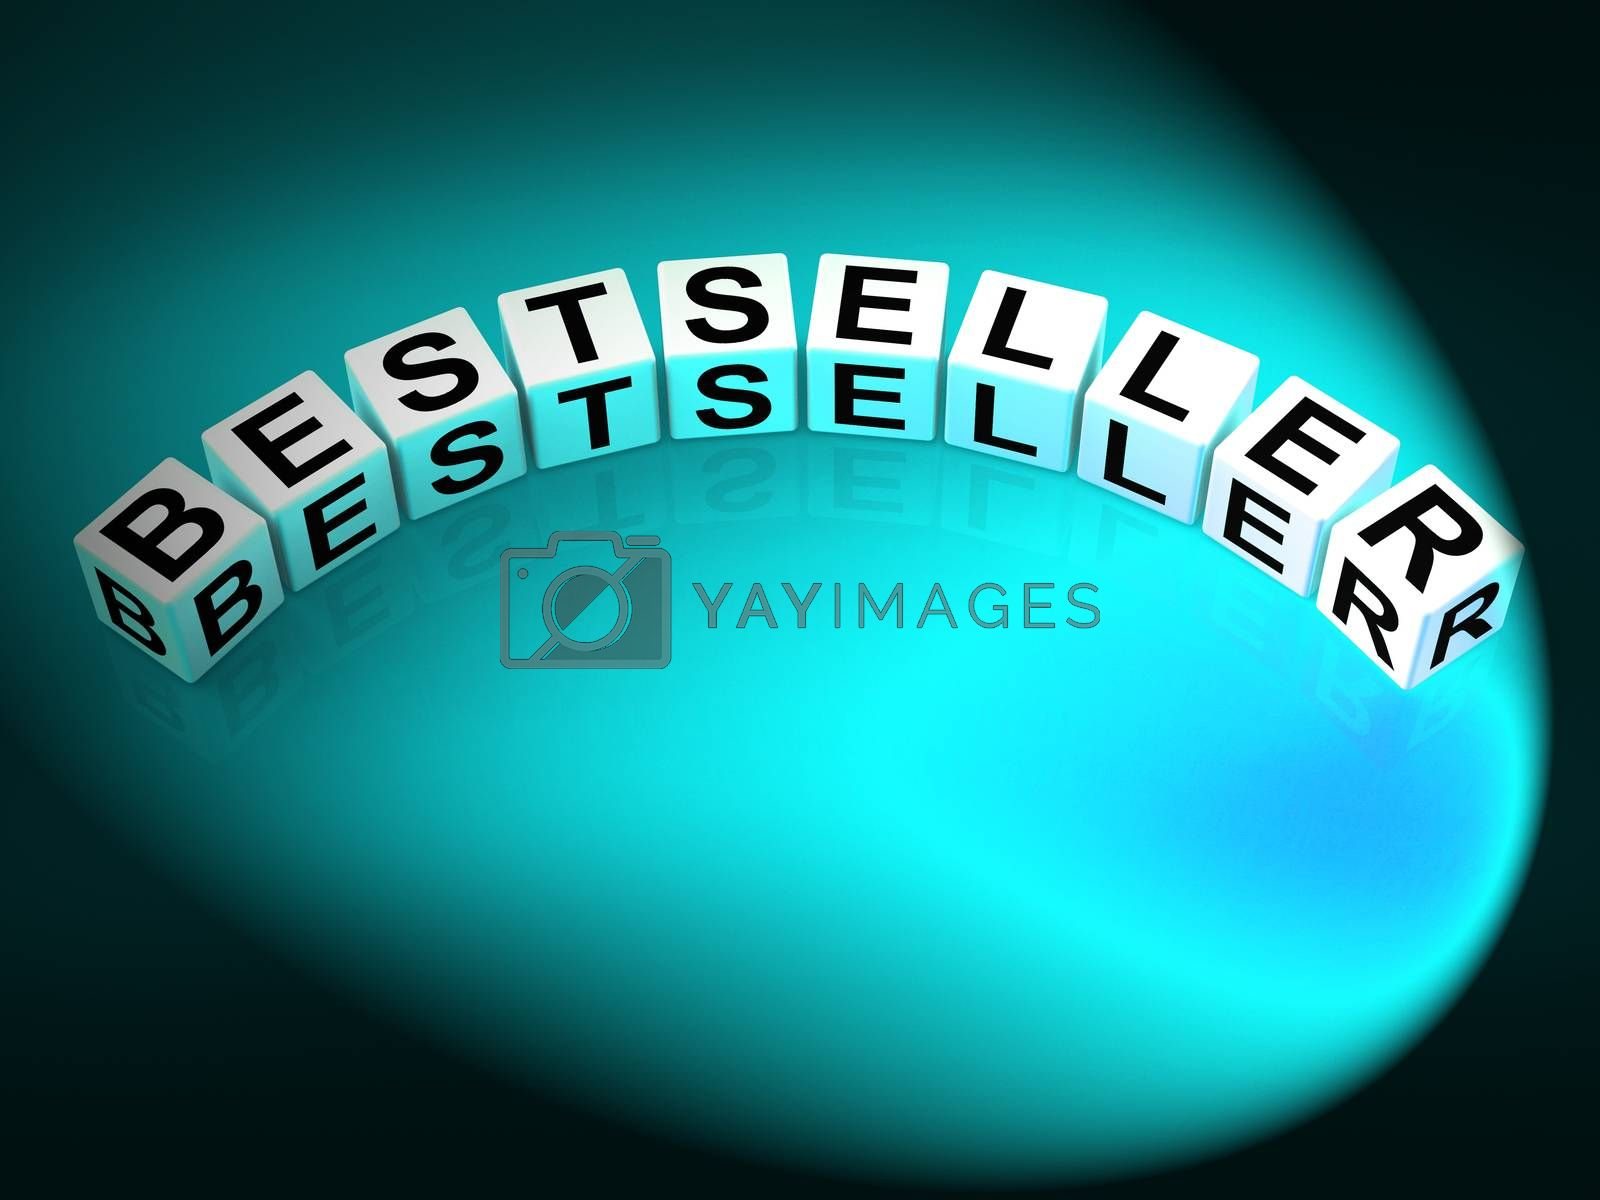 Bestseller Letters Show Most Popular And Hot Item by stuartmiles